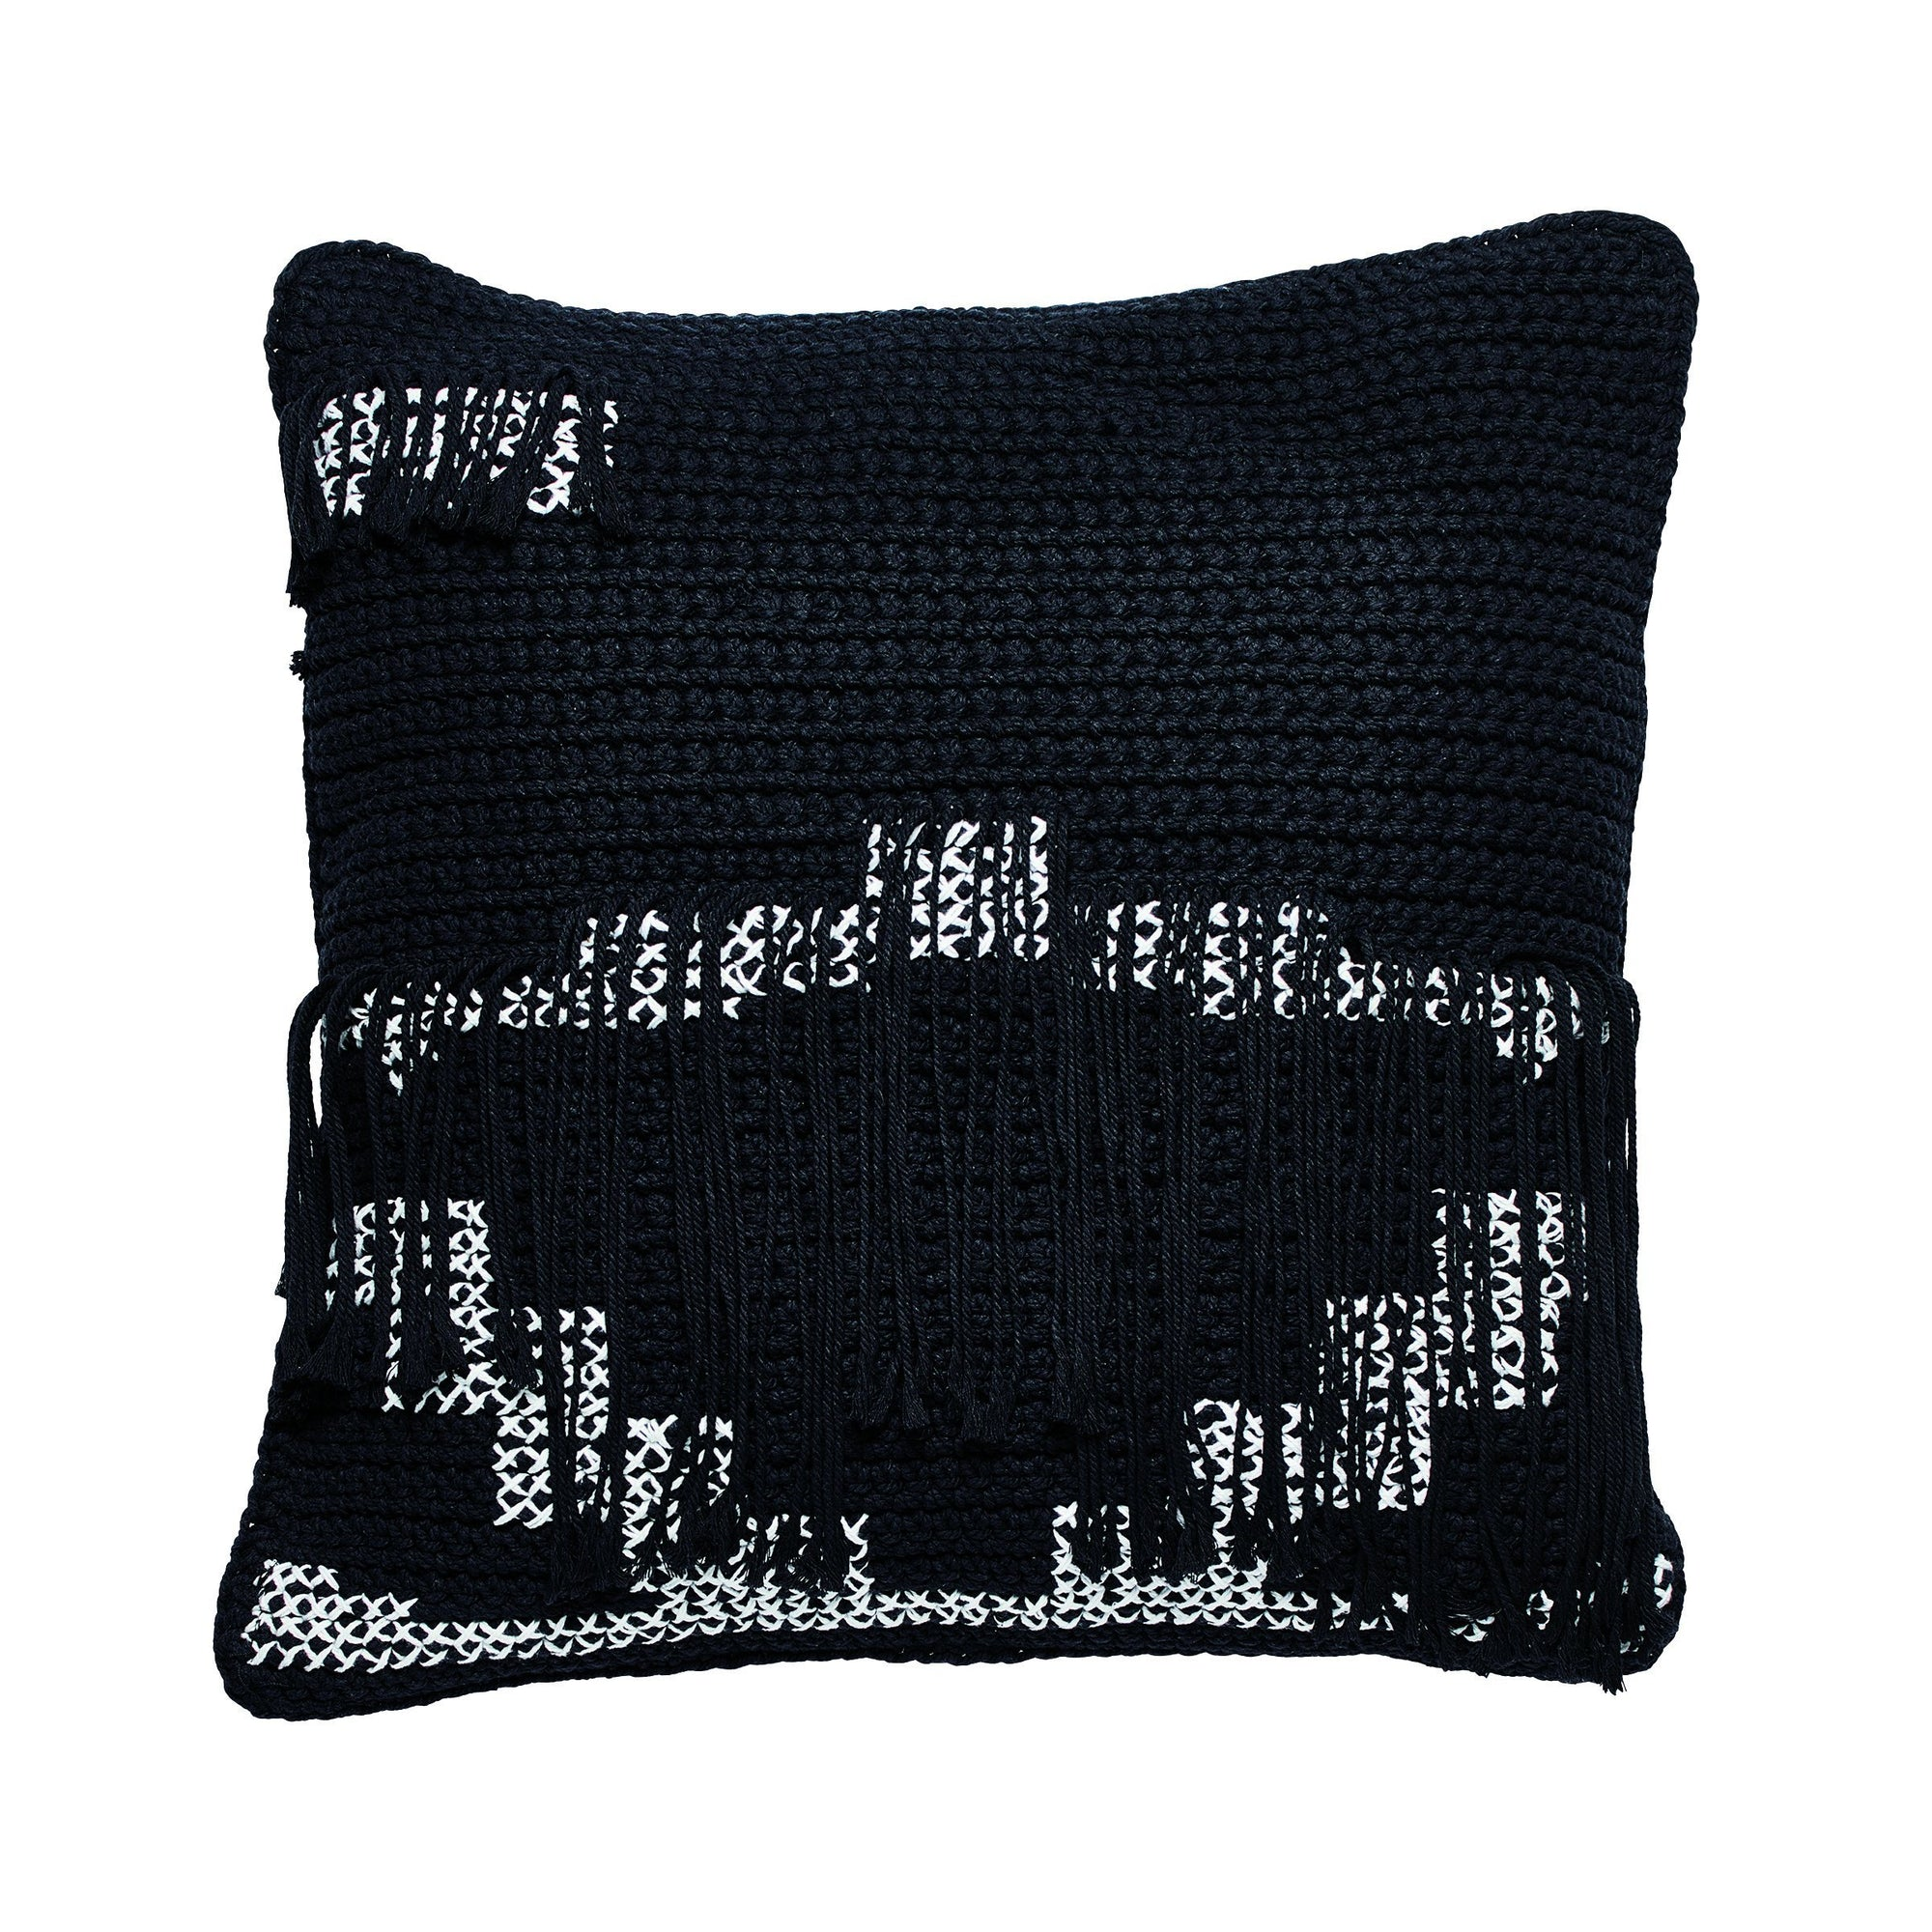 Crochet pillowcase with fringe (BSH1083)